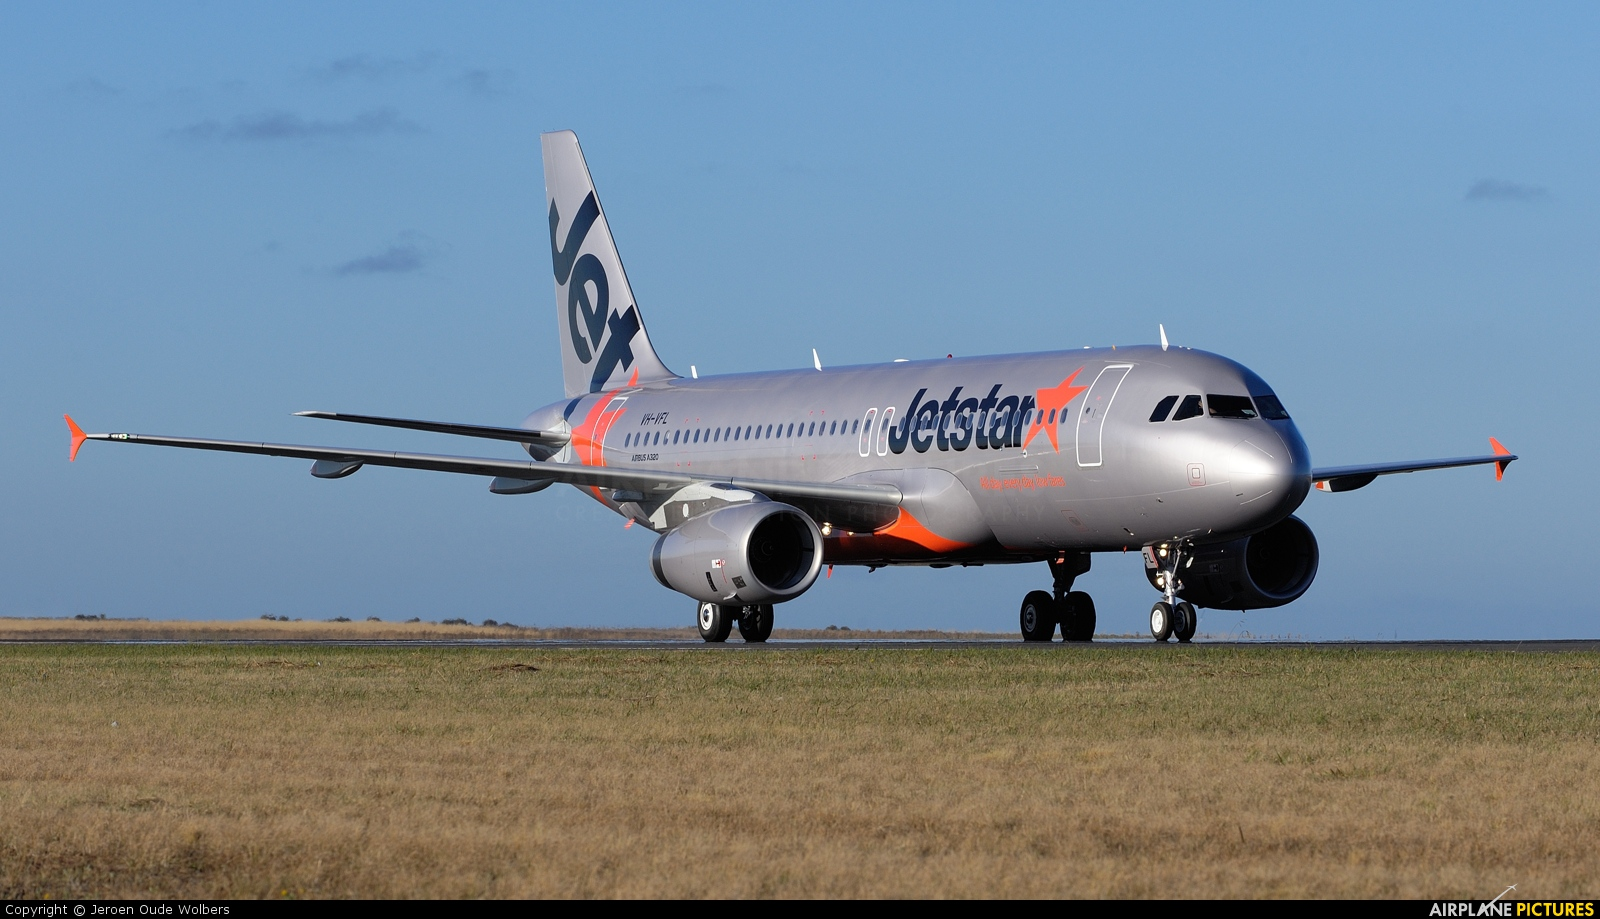 Jetstar Airways VH-VFL aircraft at Avalon, VIC